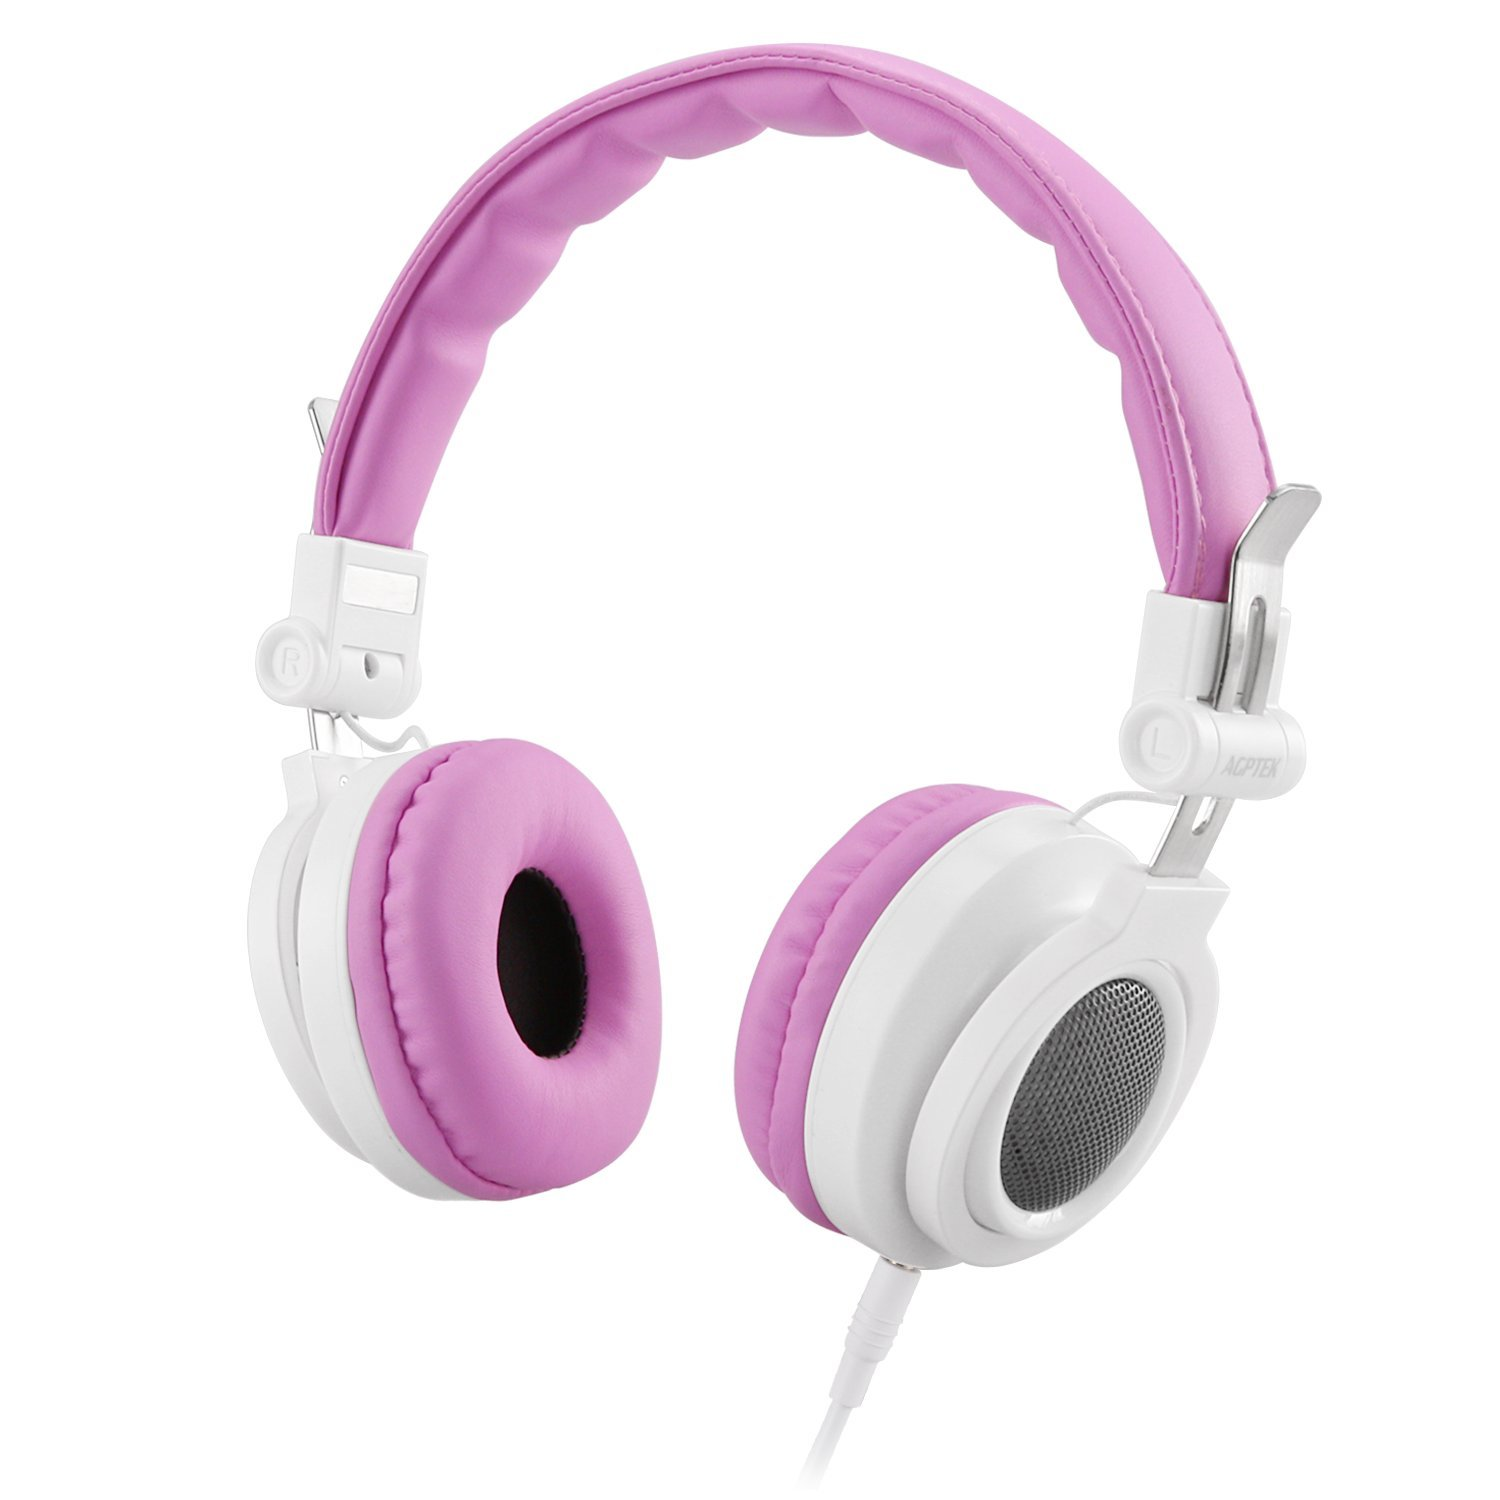 AGPTEK Kids Headphones Over Ear, Wired On-ear Children Headsets Volume Control & 85dB Volume Limited for Protection, Detachable cord, Safe Food Grade Material, 3.5mm Audio Jack for Girls, Pink